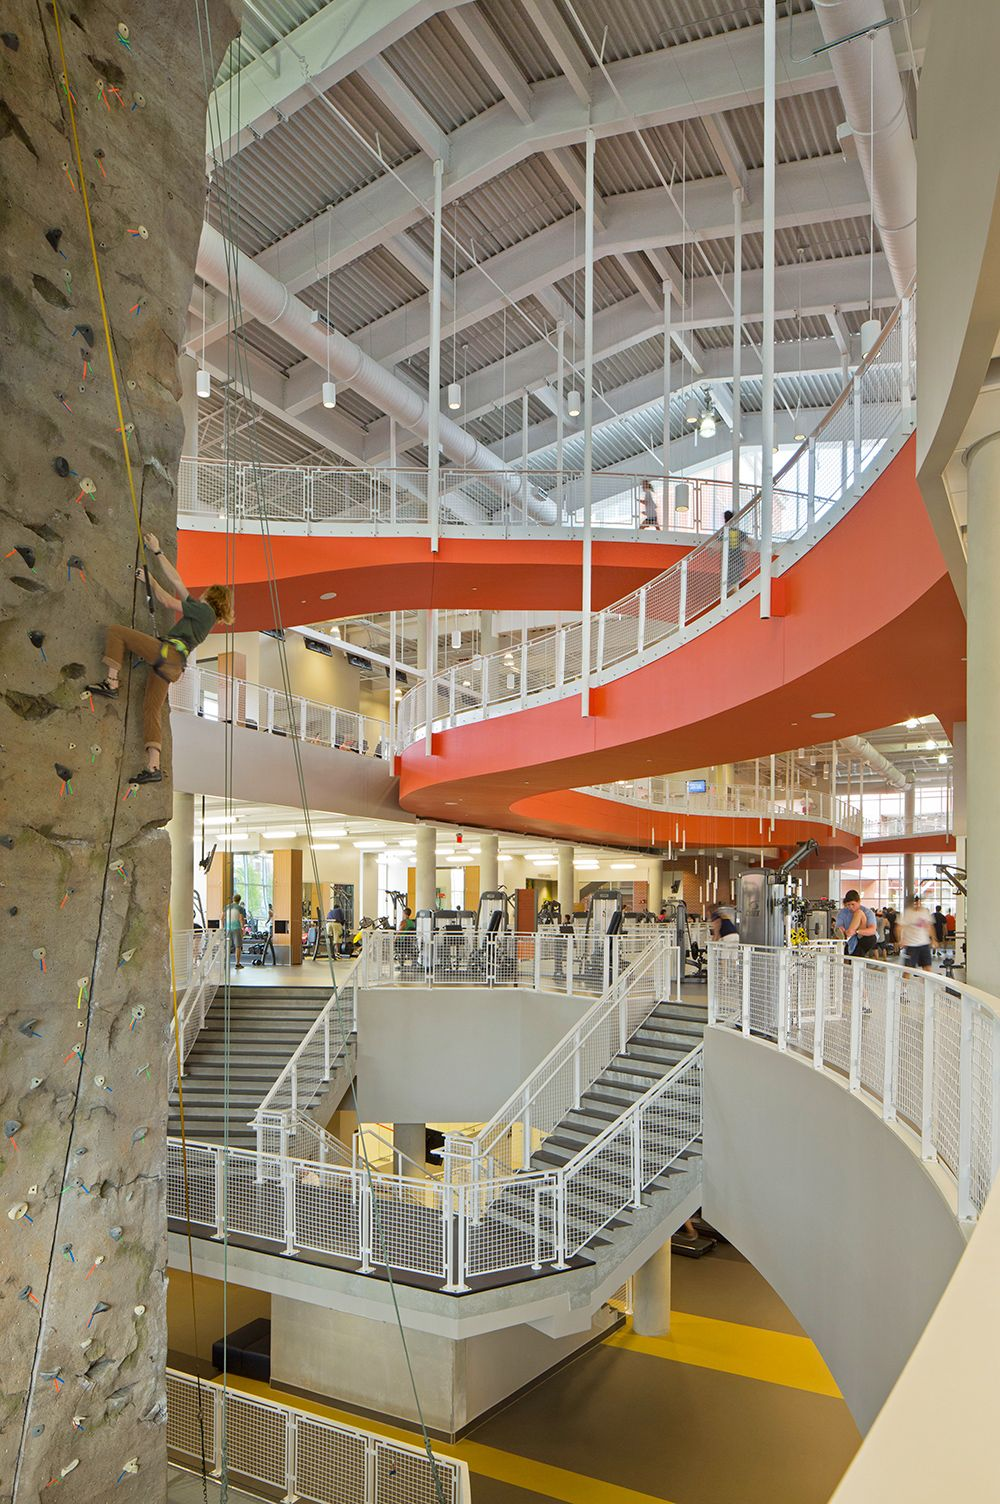 Fastcompany A Look Inside The Most Insane College Gyms This Place Is Unreal Way Better Than What We Had Gym Architecture Architecture Design